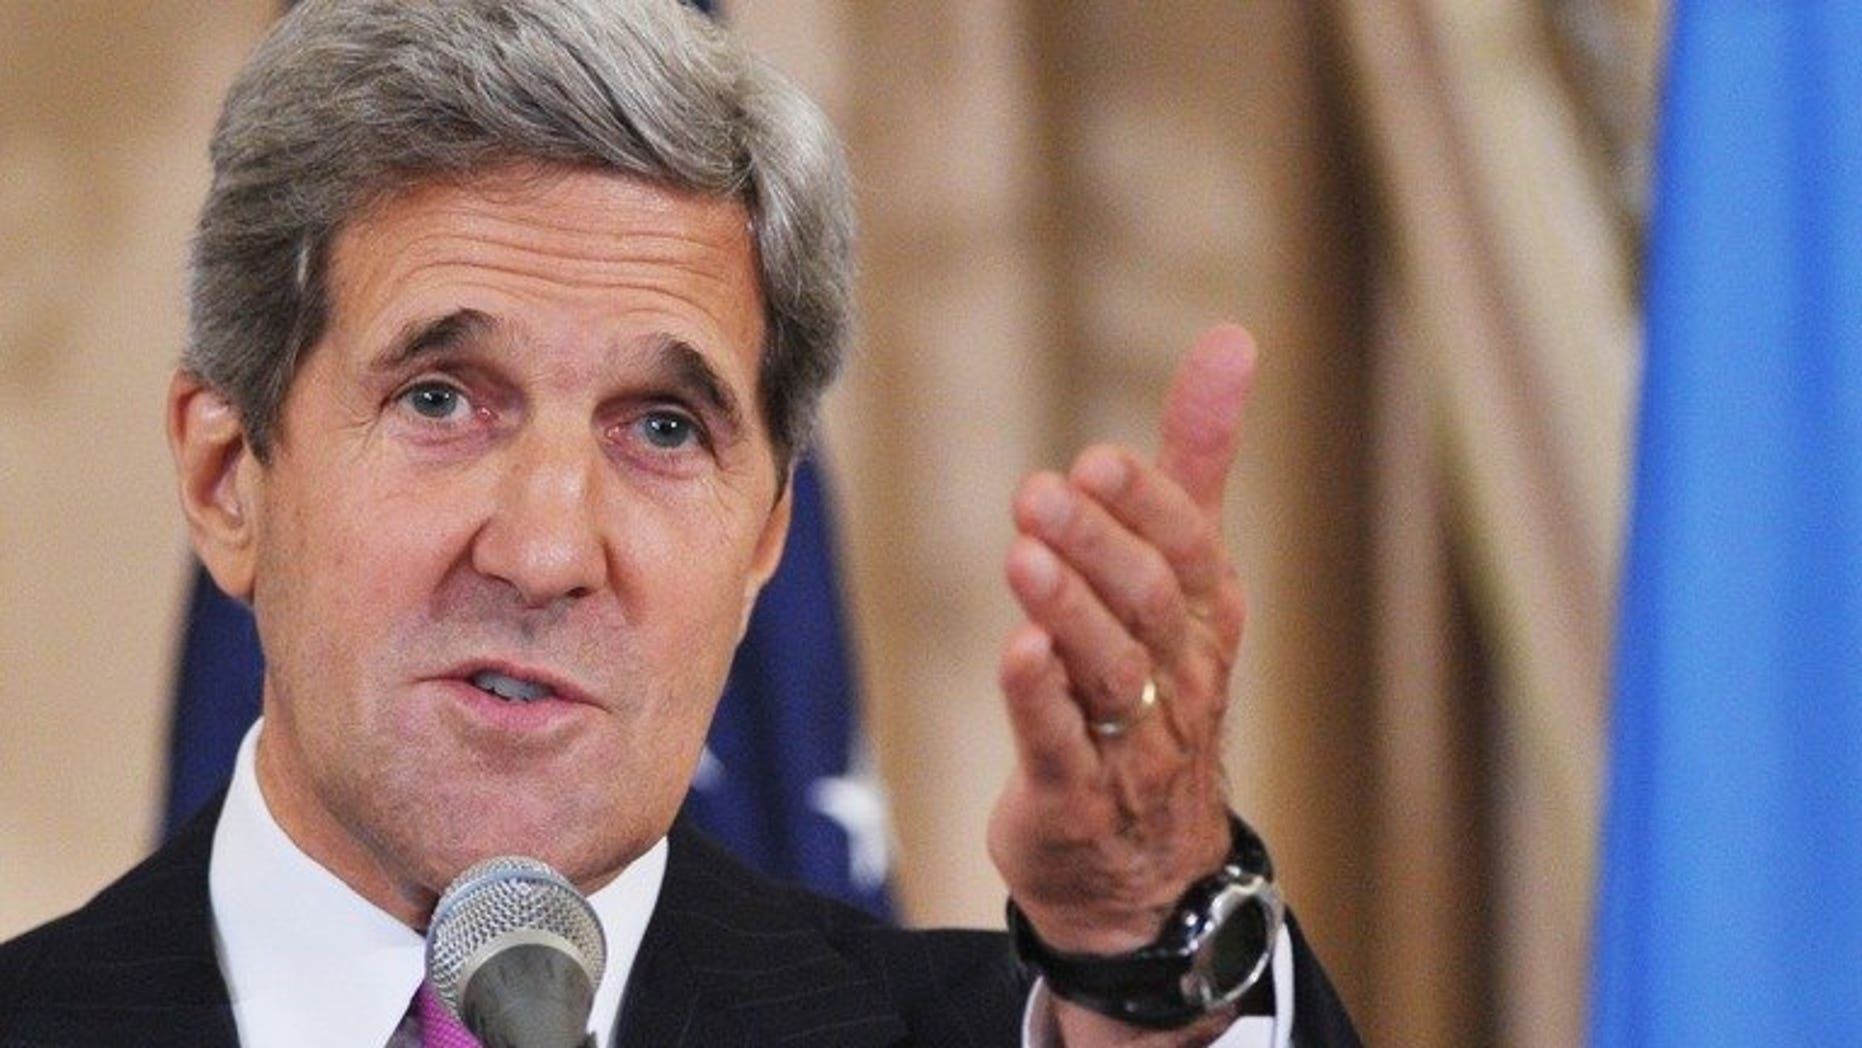 US Secretary of State John Kerry's return to the Middle East to restart direct talks between Israel and the Palestinians could be postponed because of his wife's illness, a Palestinian official said.